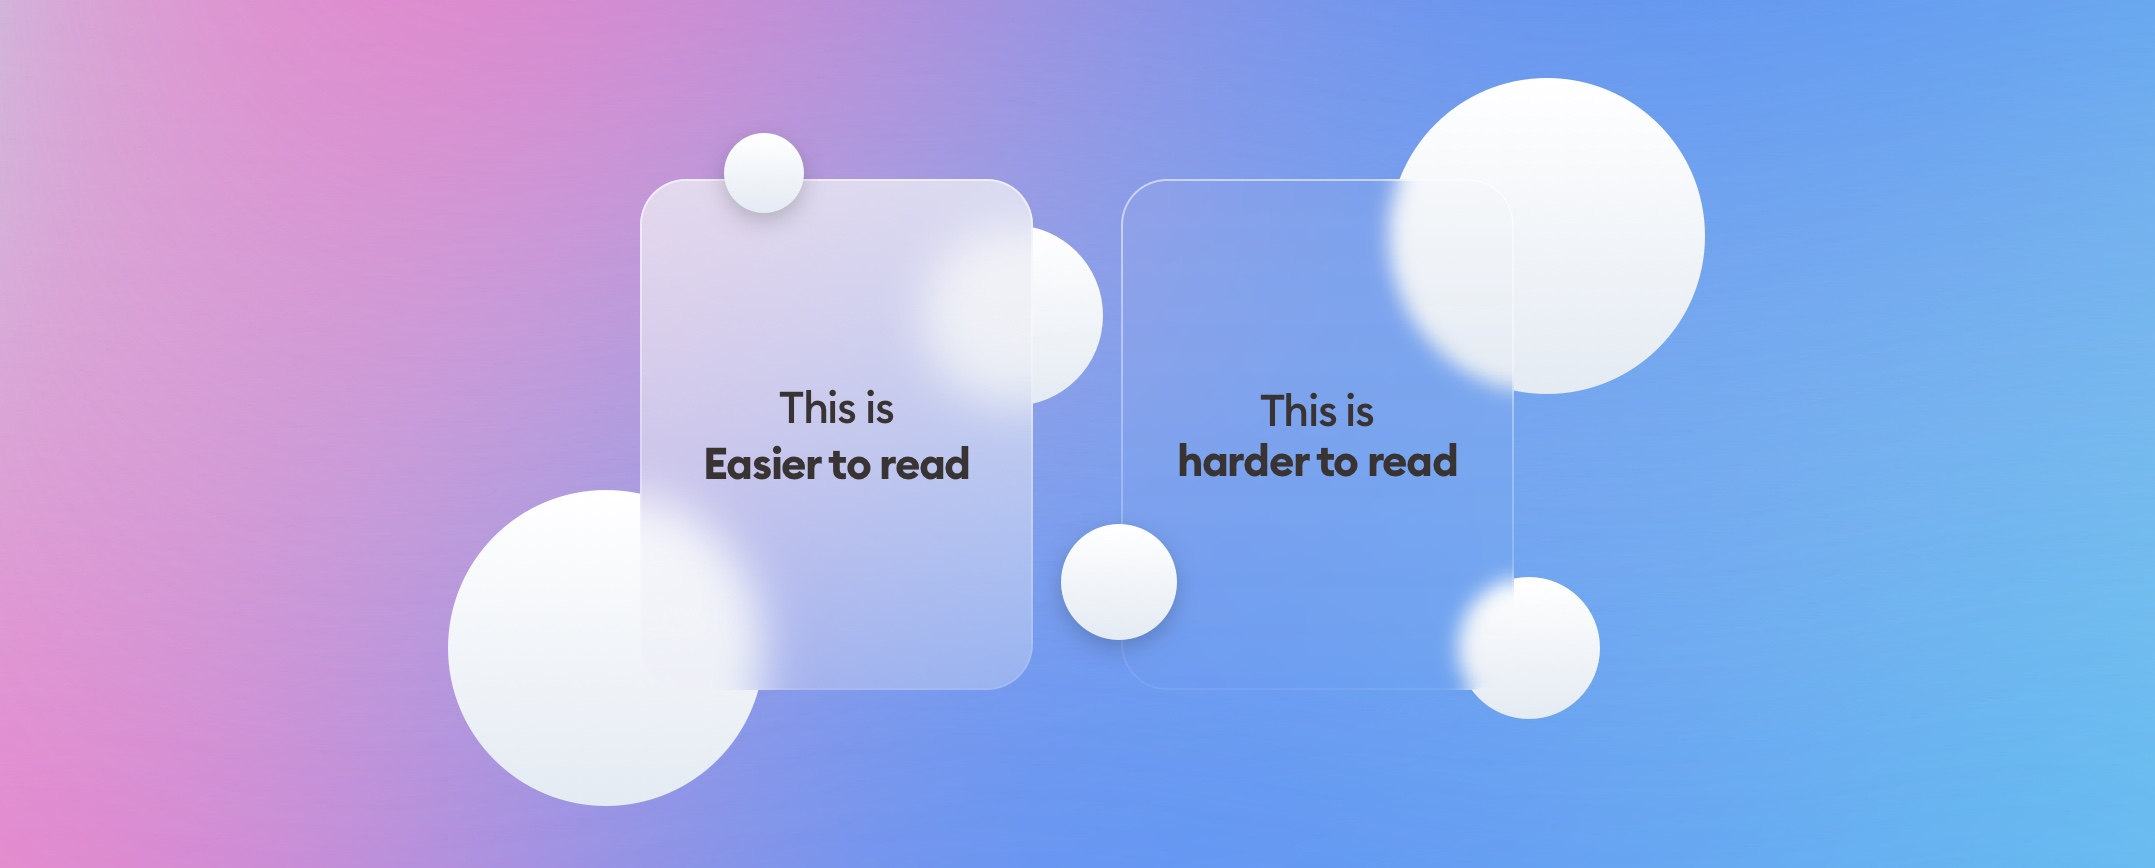 Glassmorphism and accessibility